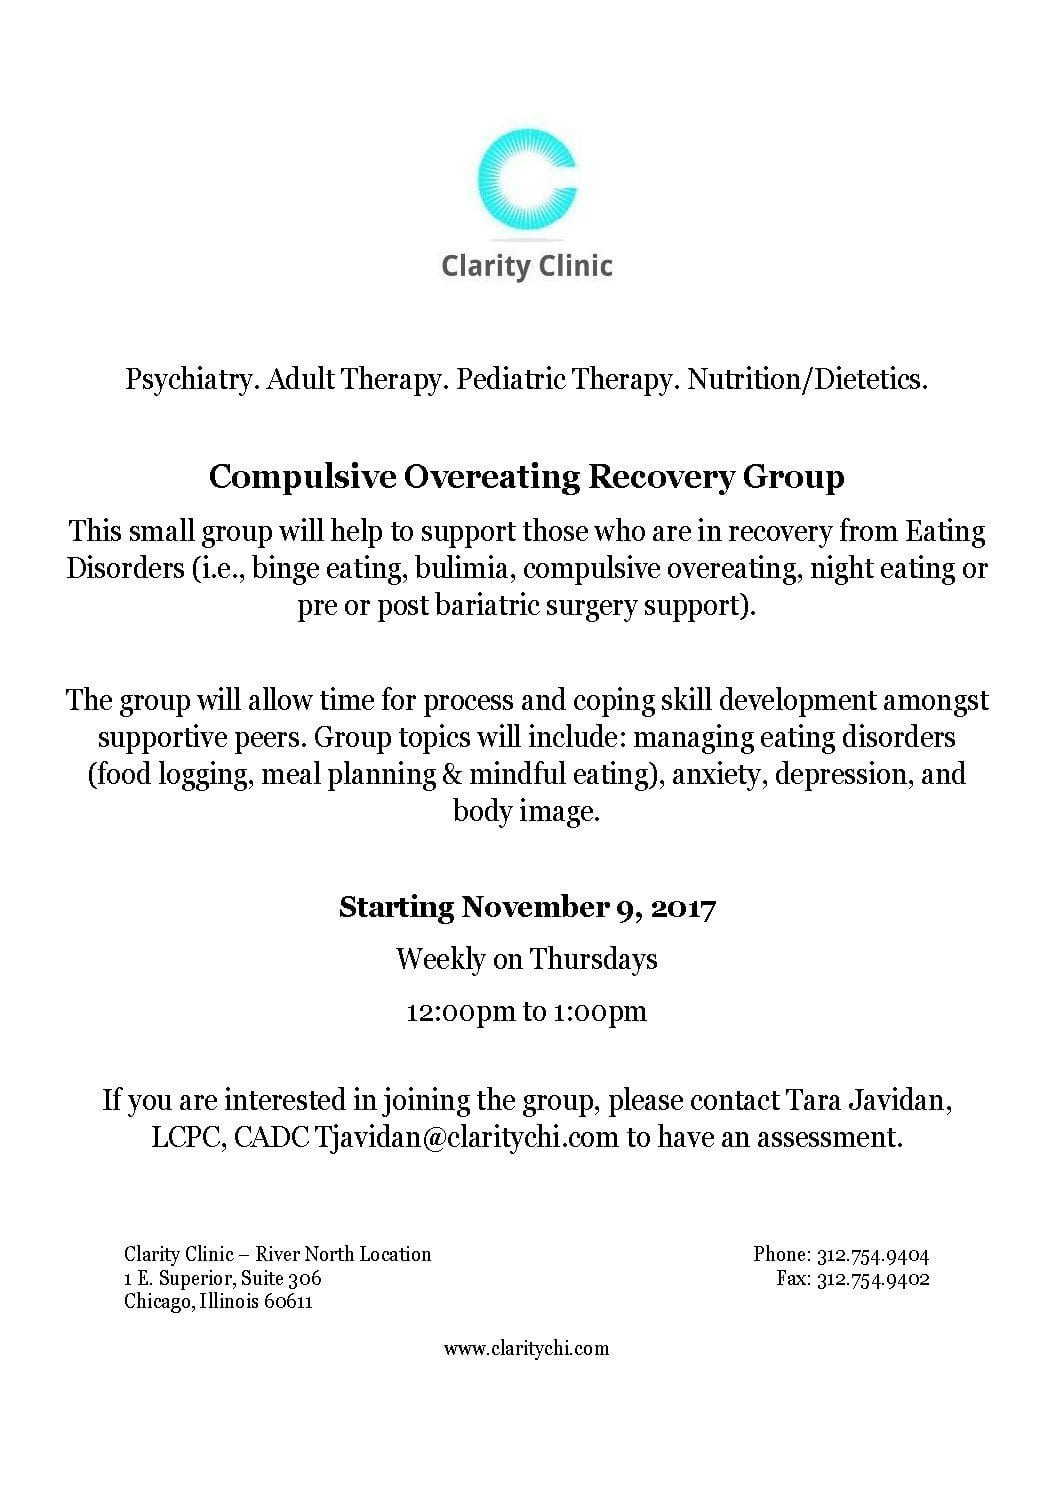 Mindful Eating Adhd And Nutrition >> Compulsive Overeating Recovery Group - Clarity Clinic